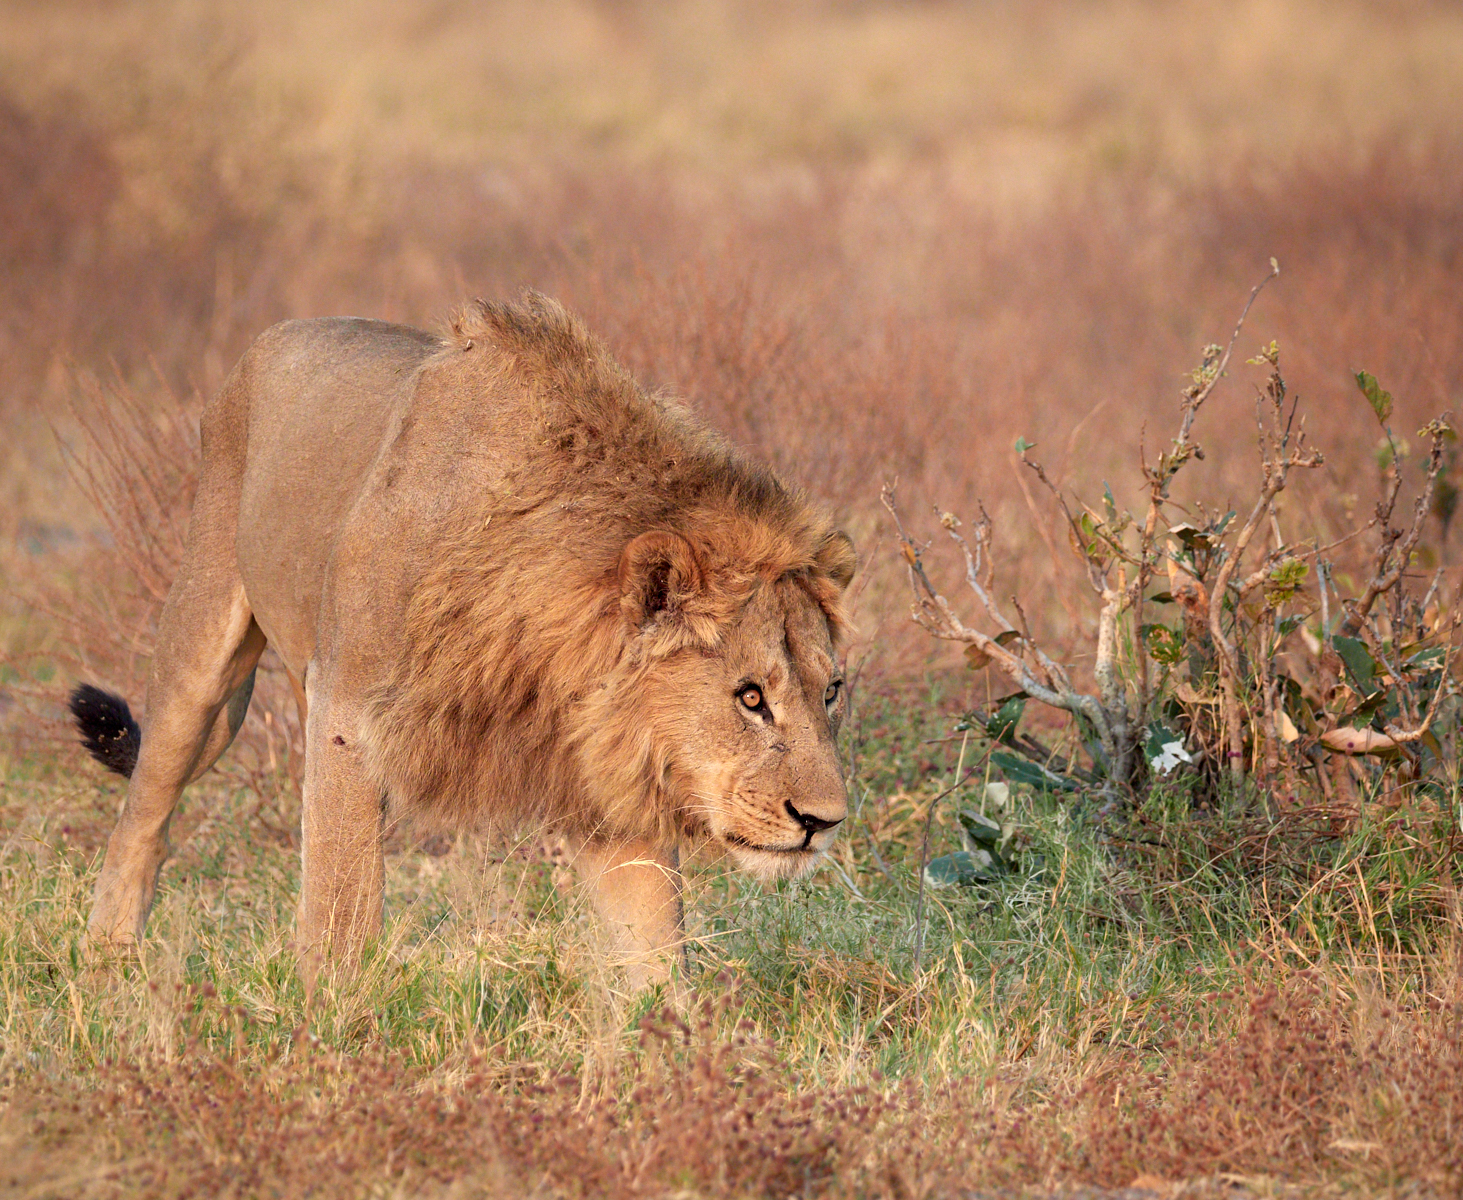 Male lion searching for his pride 1600x1200 sRGB.jpg